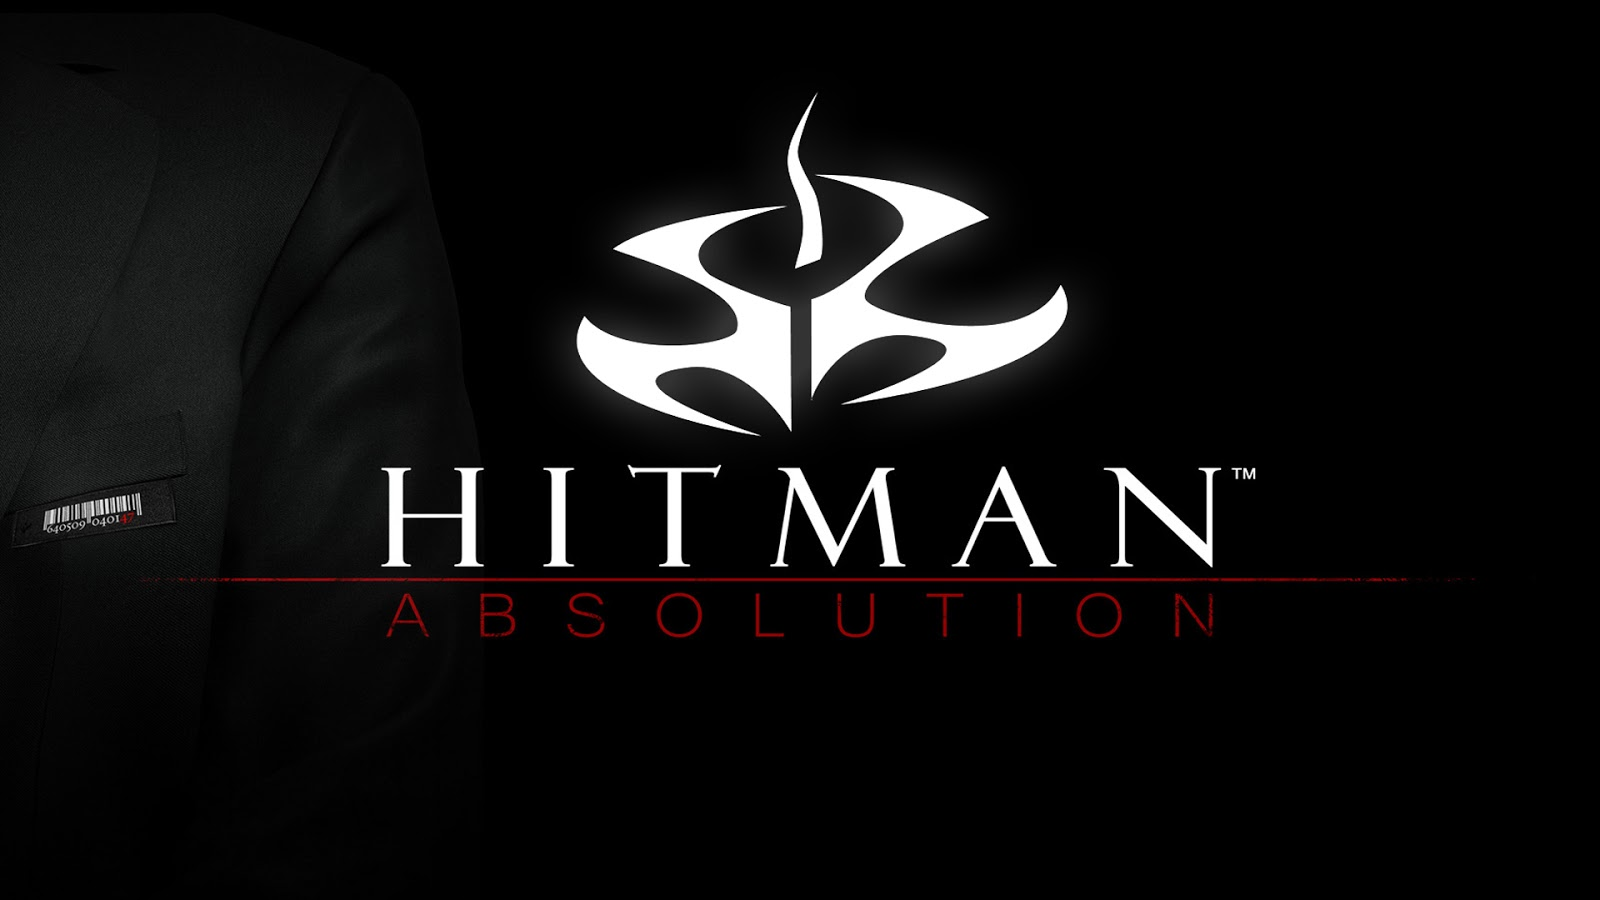 Full HD Hitman Wallpapers.